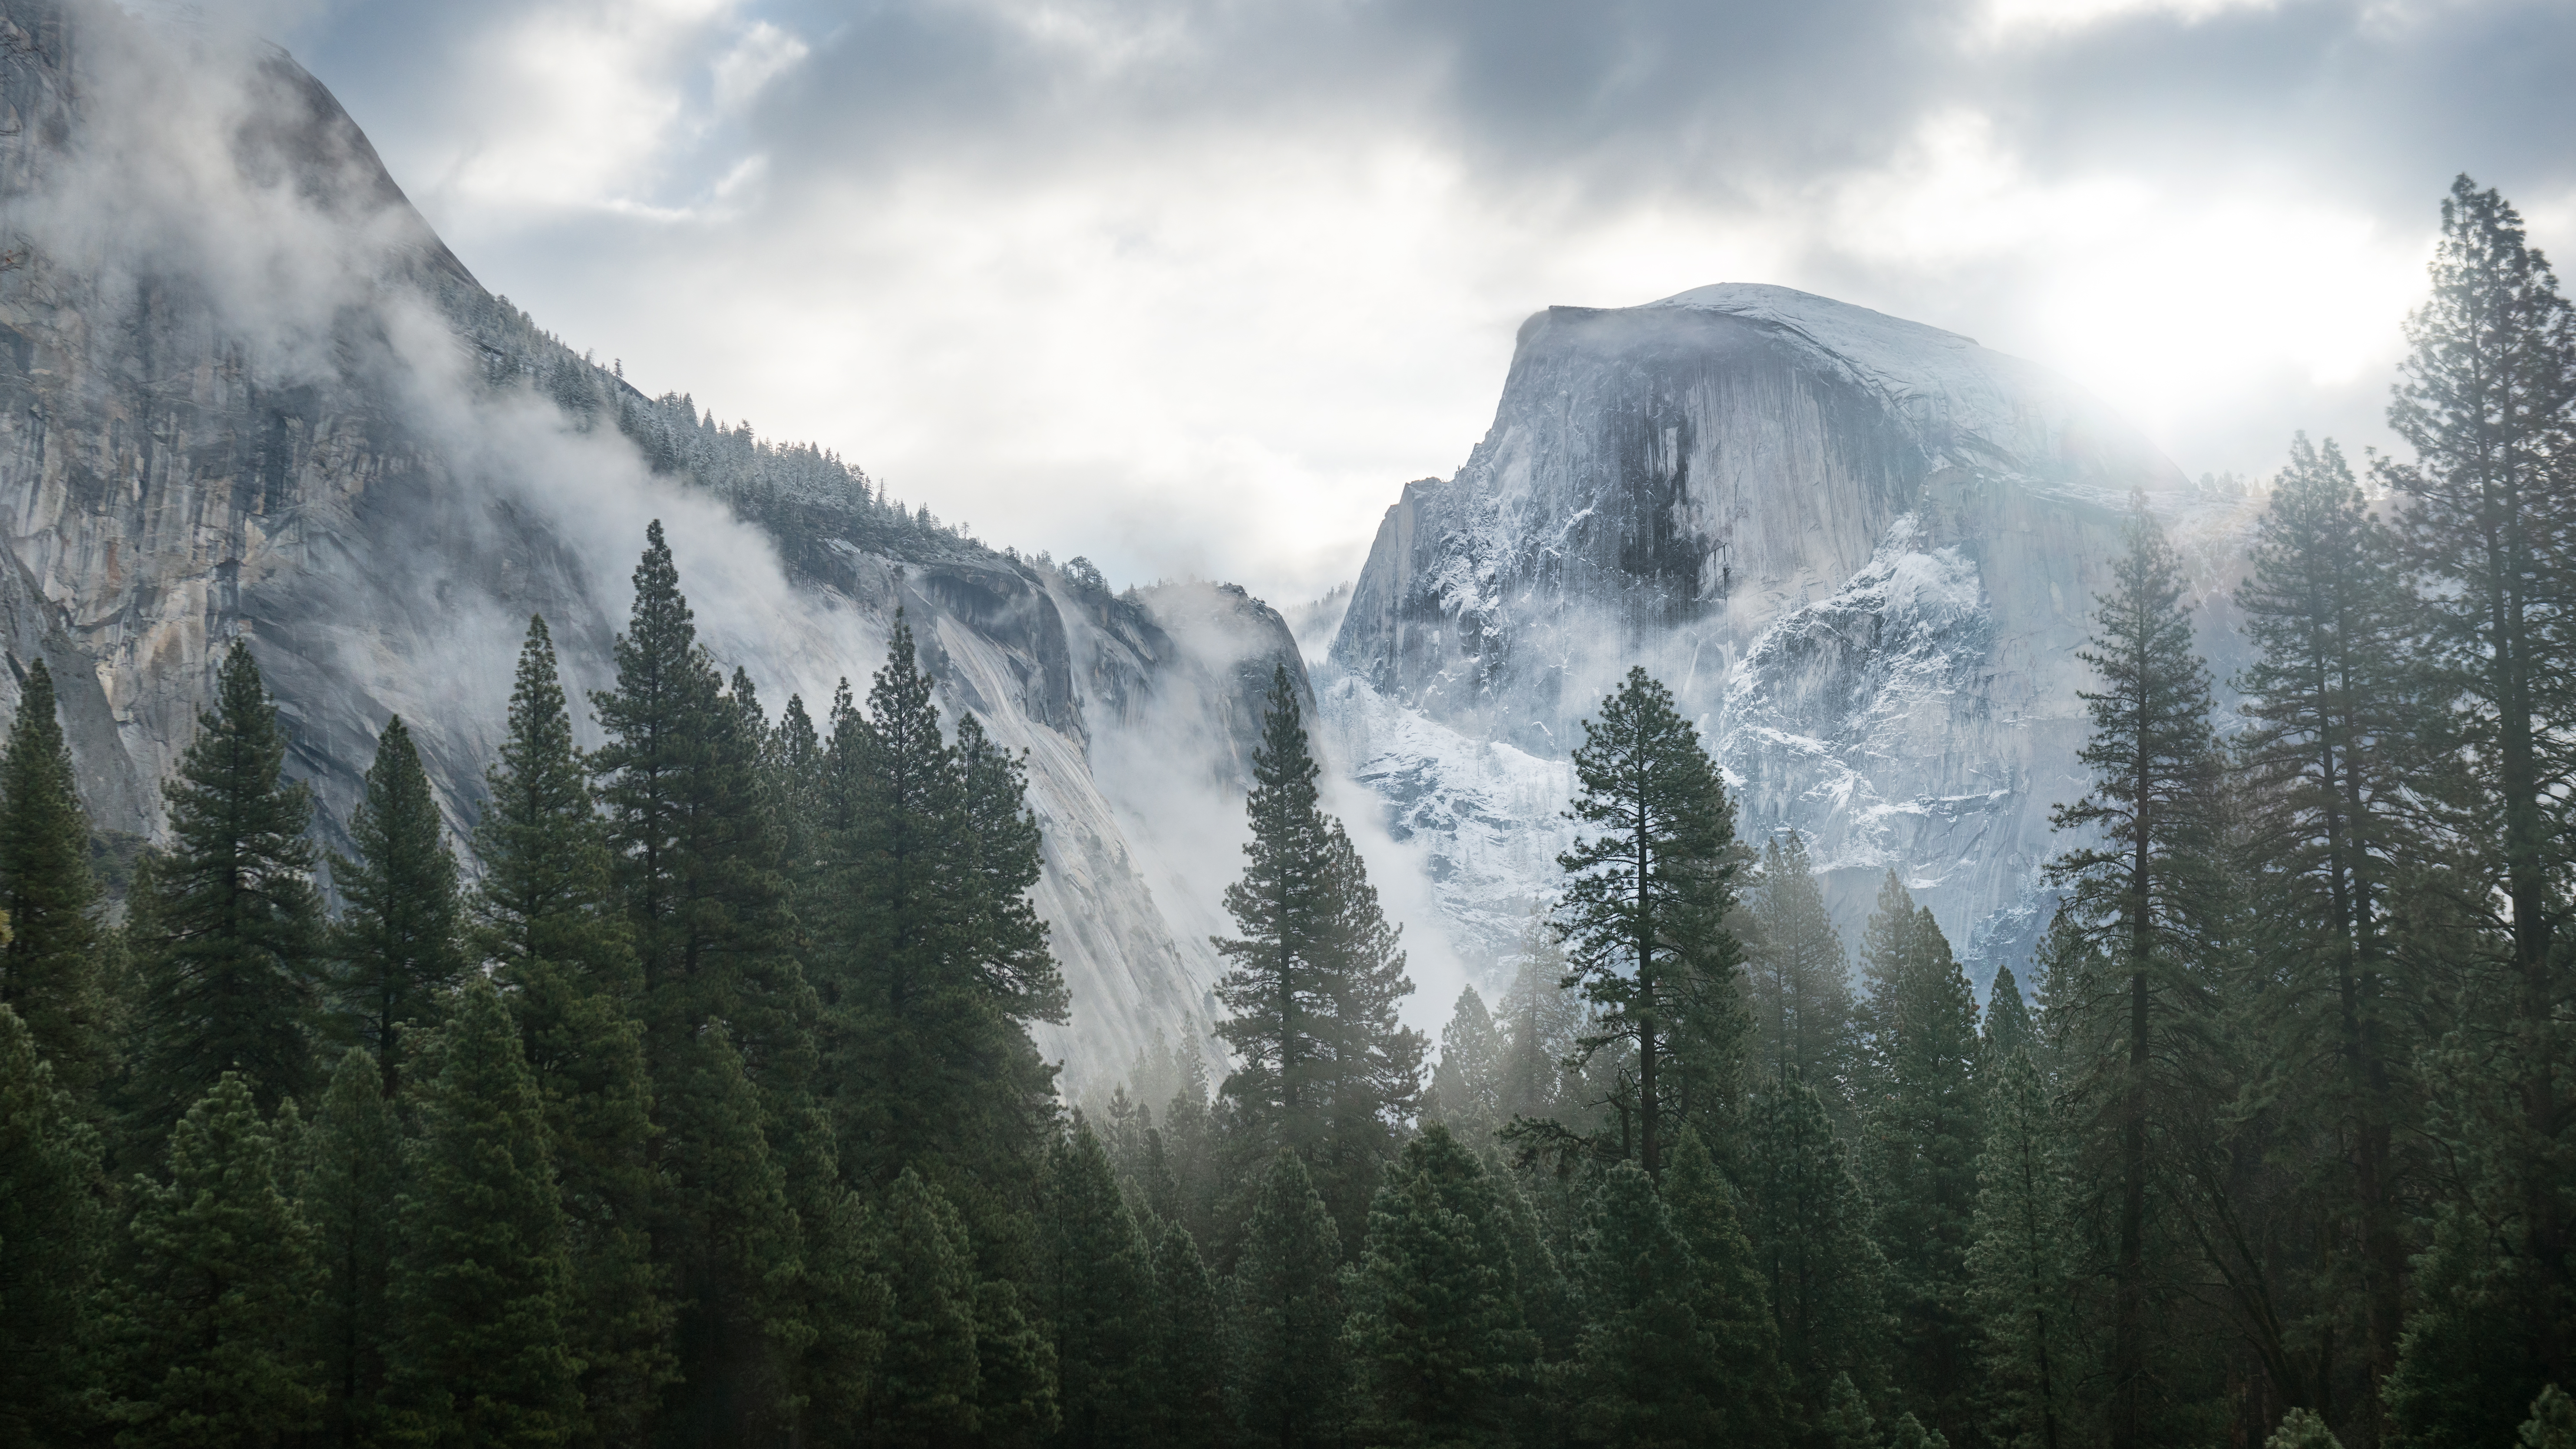 Download the new OS X Yosemite wallpapers for Mac iPhone and iPad 5932x3337